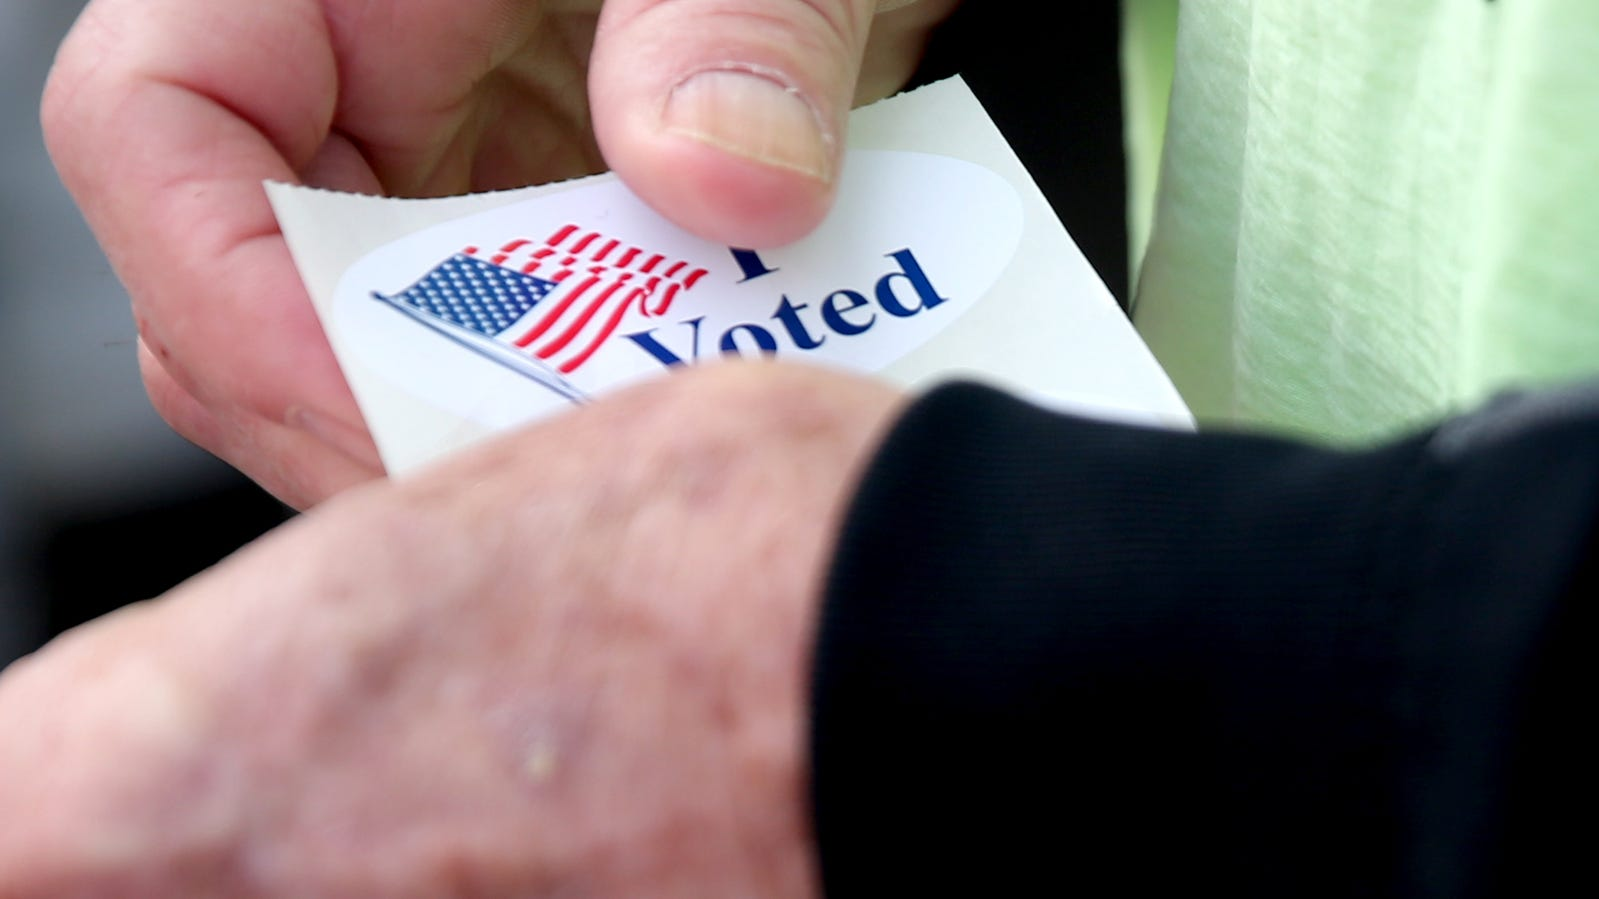 Your vote doesn't matter. Also, you're likely to harm others. (A view we don't endorse, but can appreciate.) thumbnail